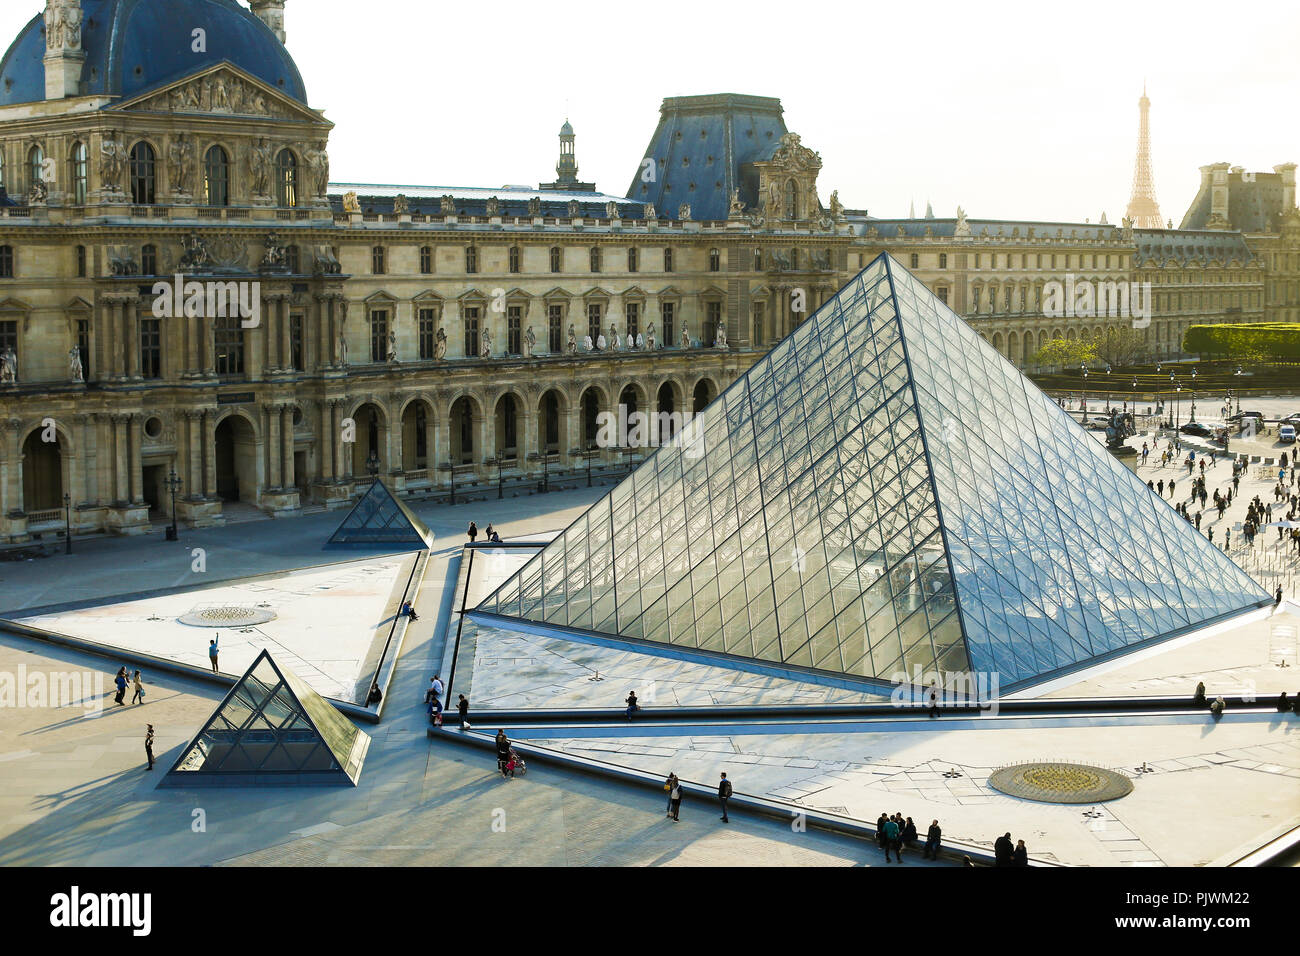 People walking in Louvre near glass pyramid, Paris, France. - Stock Image